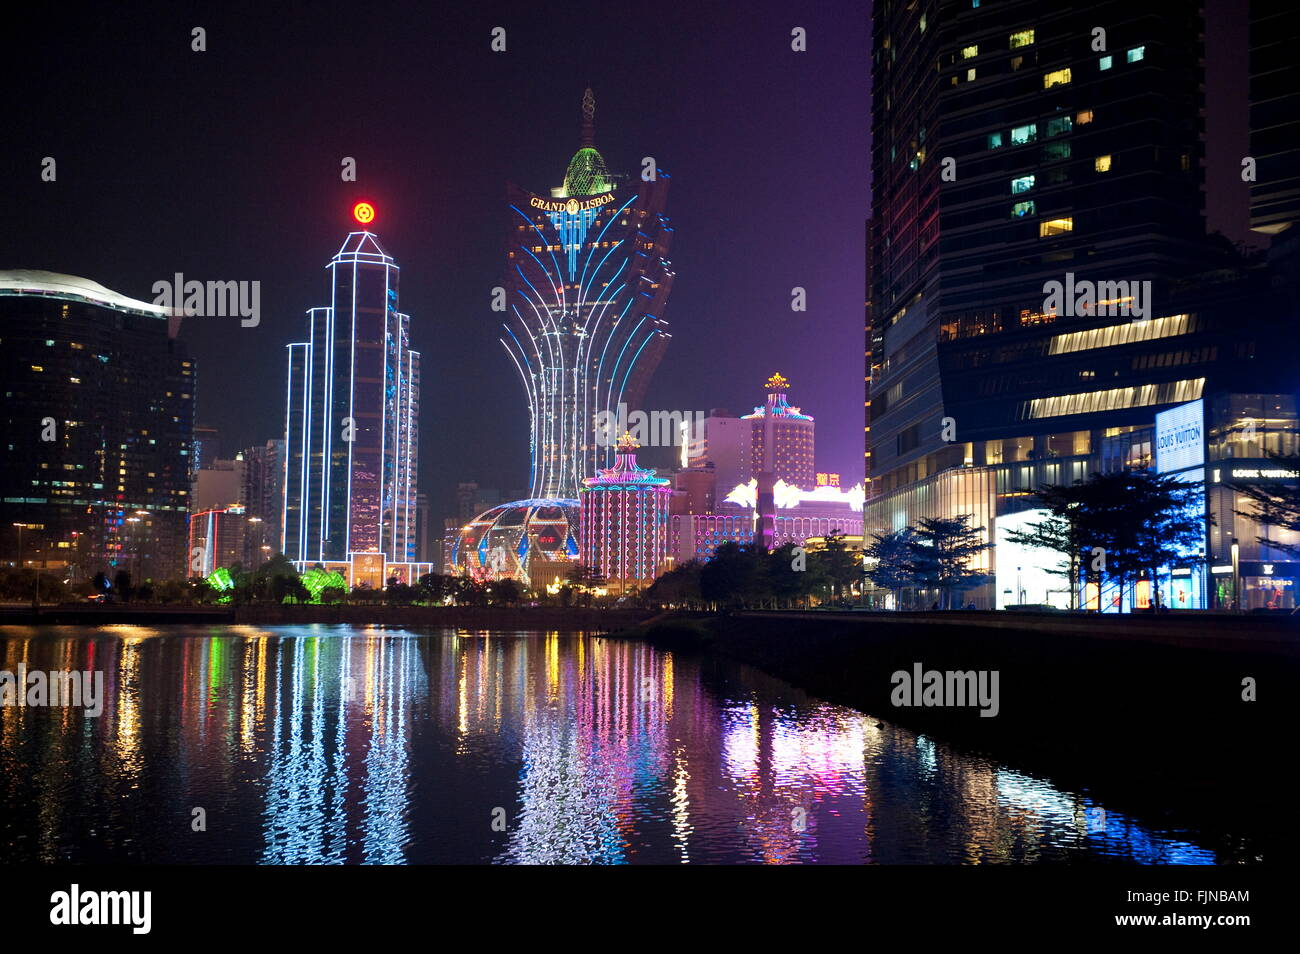 Géographie / voyages, Chine, Macao, casino, Grand Lisboa, Additional-Rights Clearance-Info-Not-Available- Photo Stock